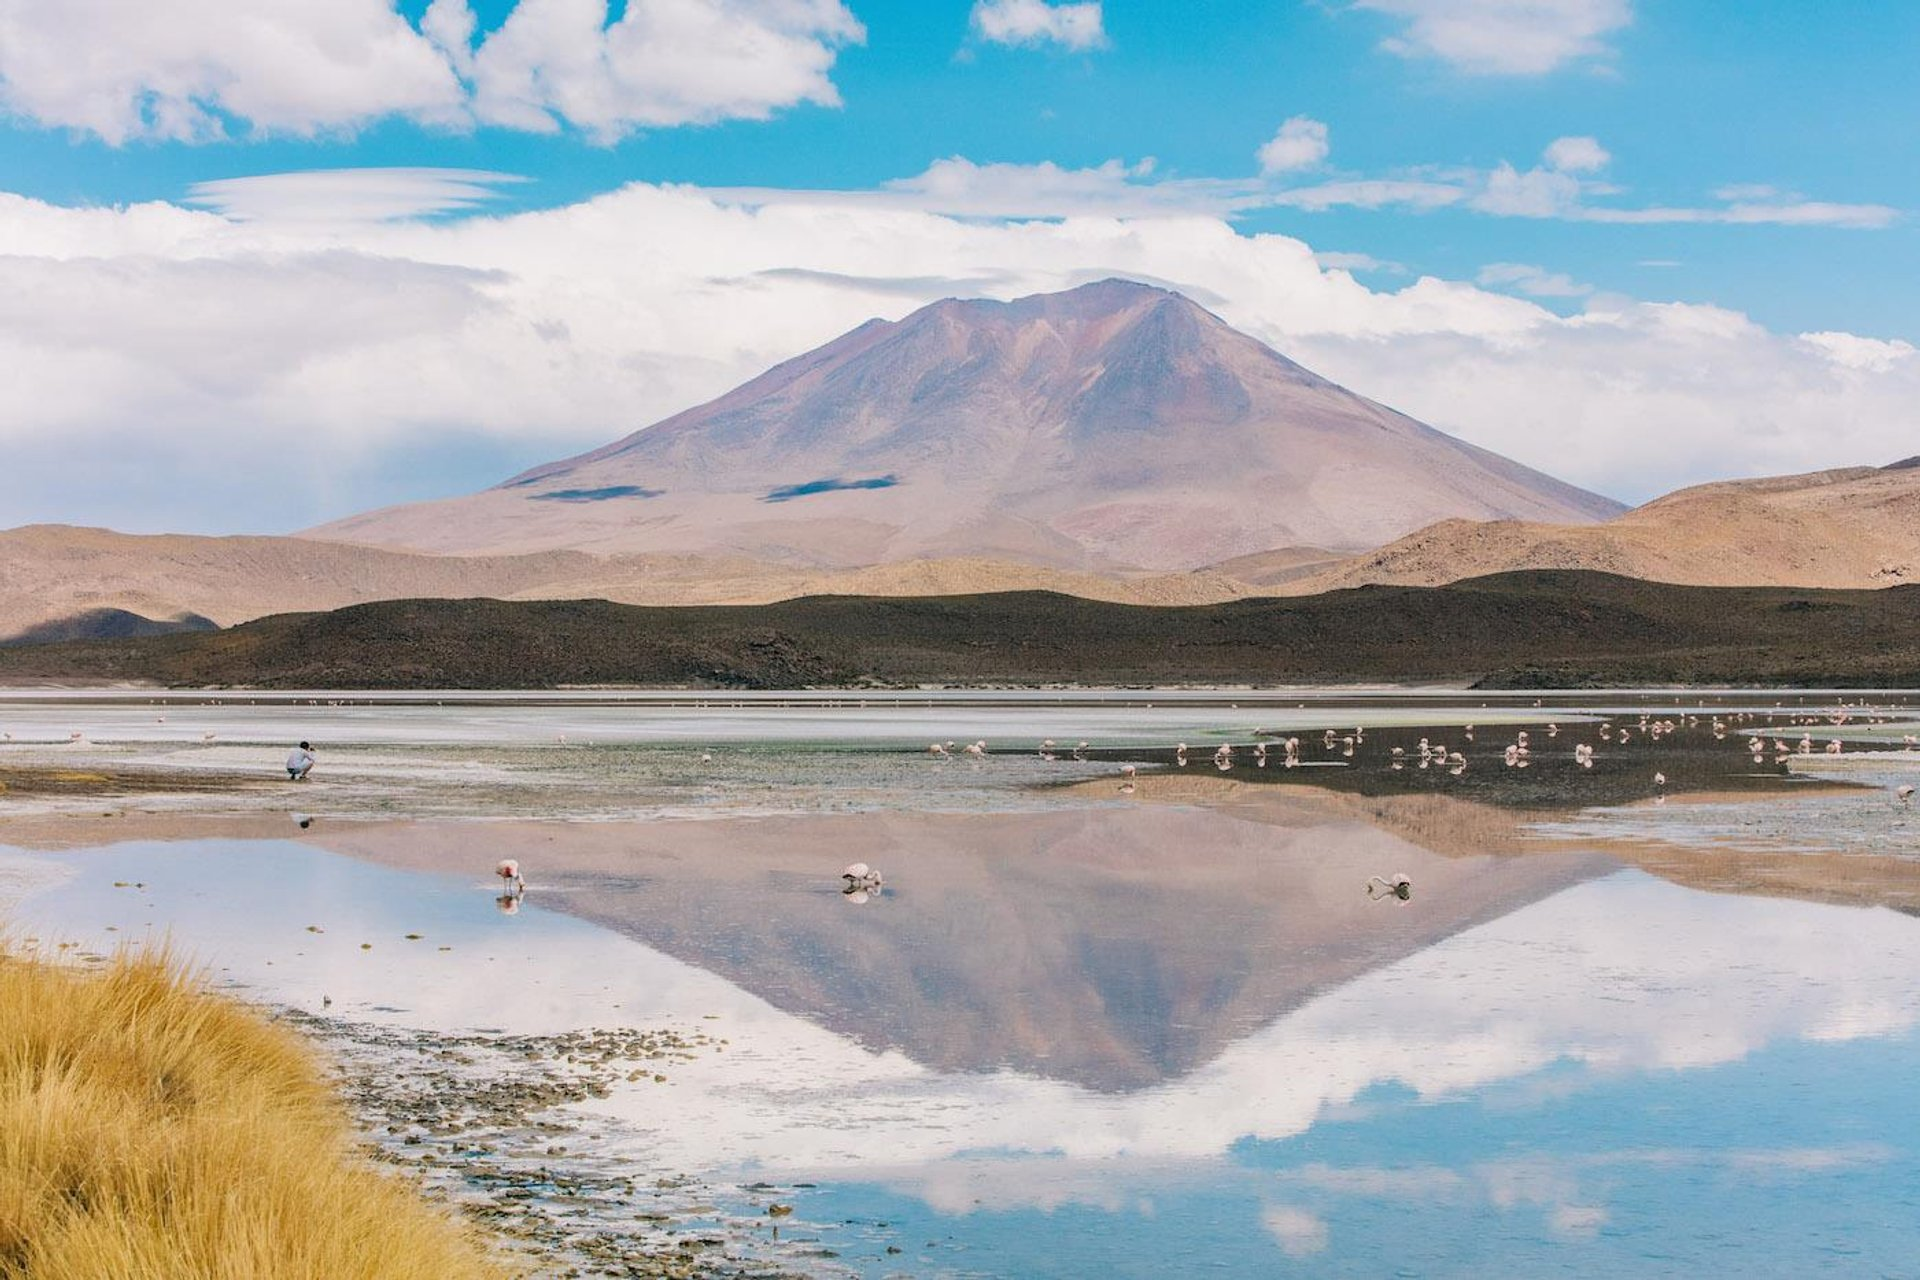 Lake at Salt Flats or Salar de Uyuni in Bolivia - Best Season 2020